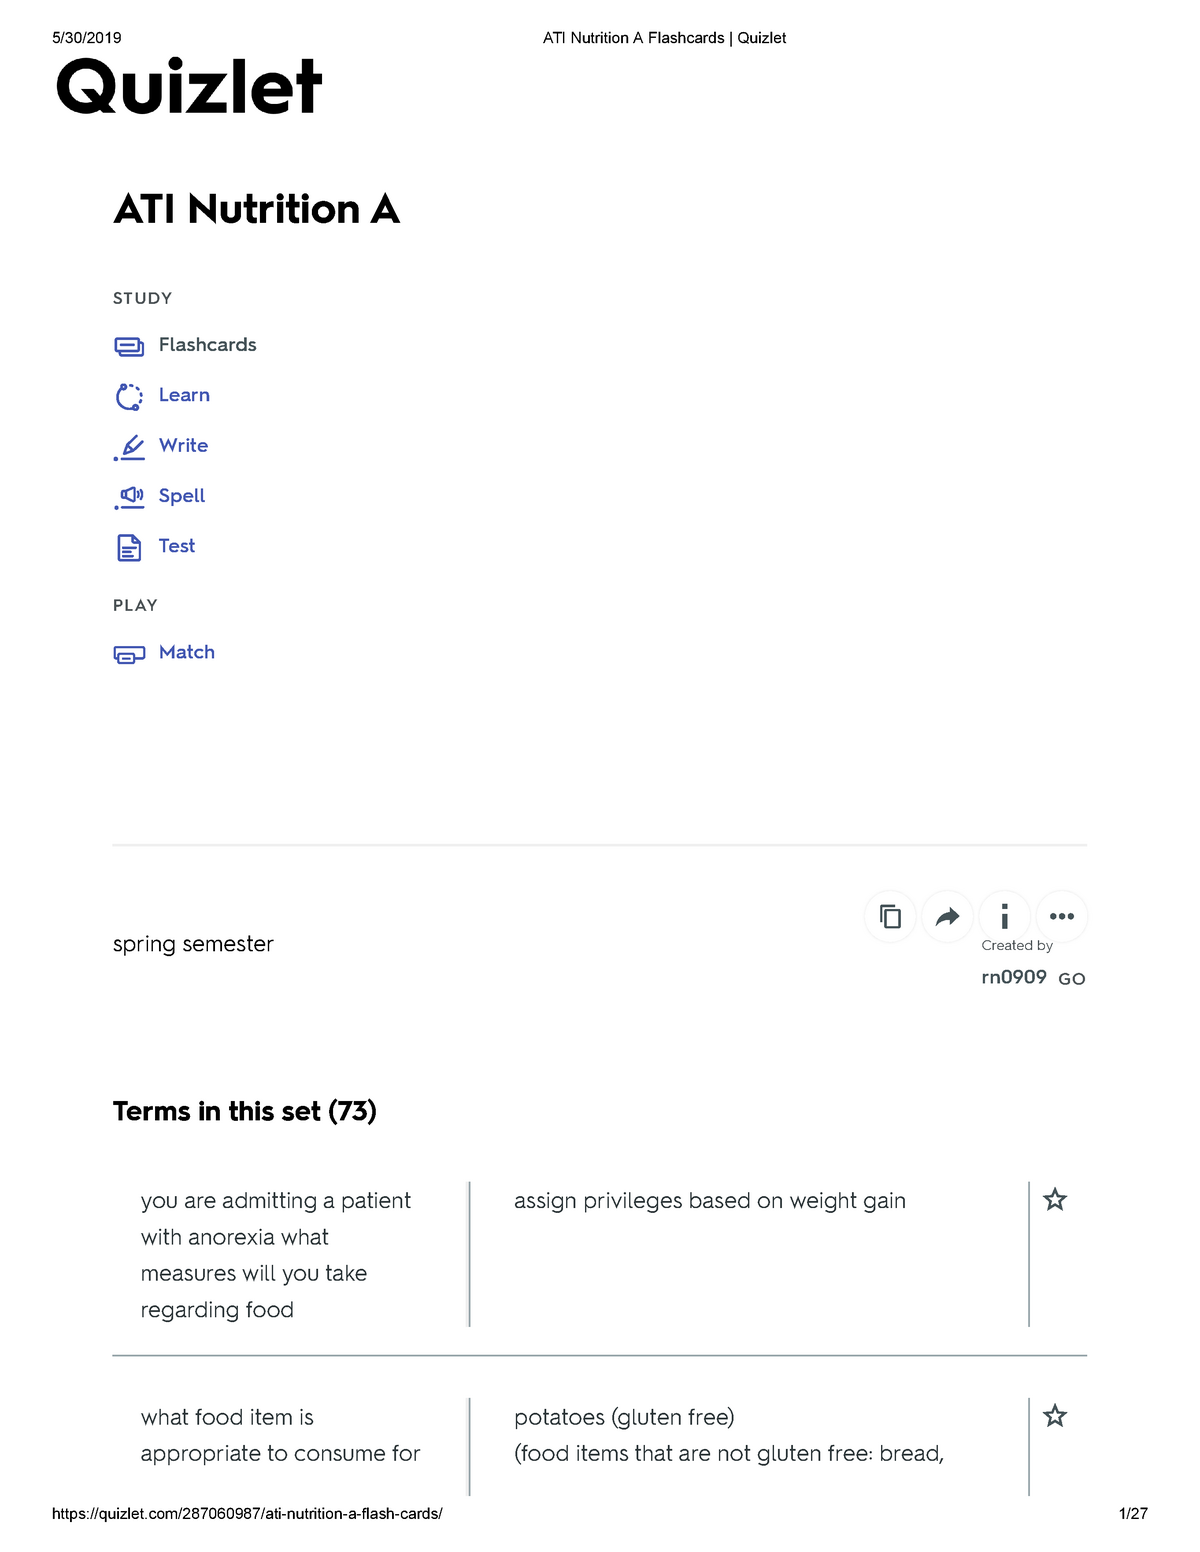 ATI Nutrition A Flashcards Quizlet-Summer 2019 - AHN 447